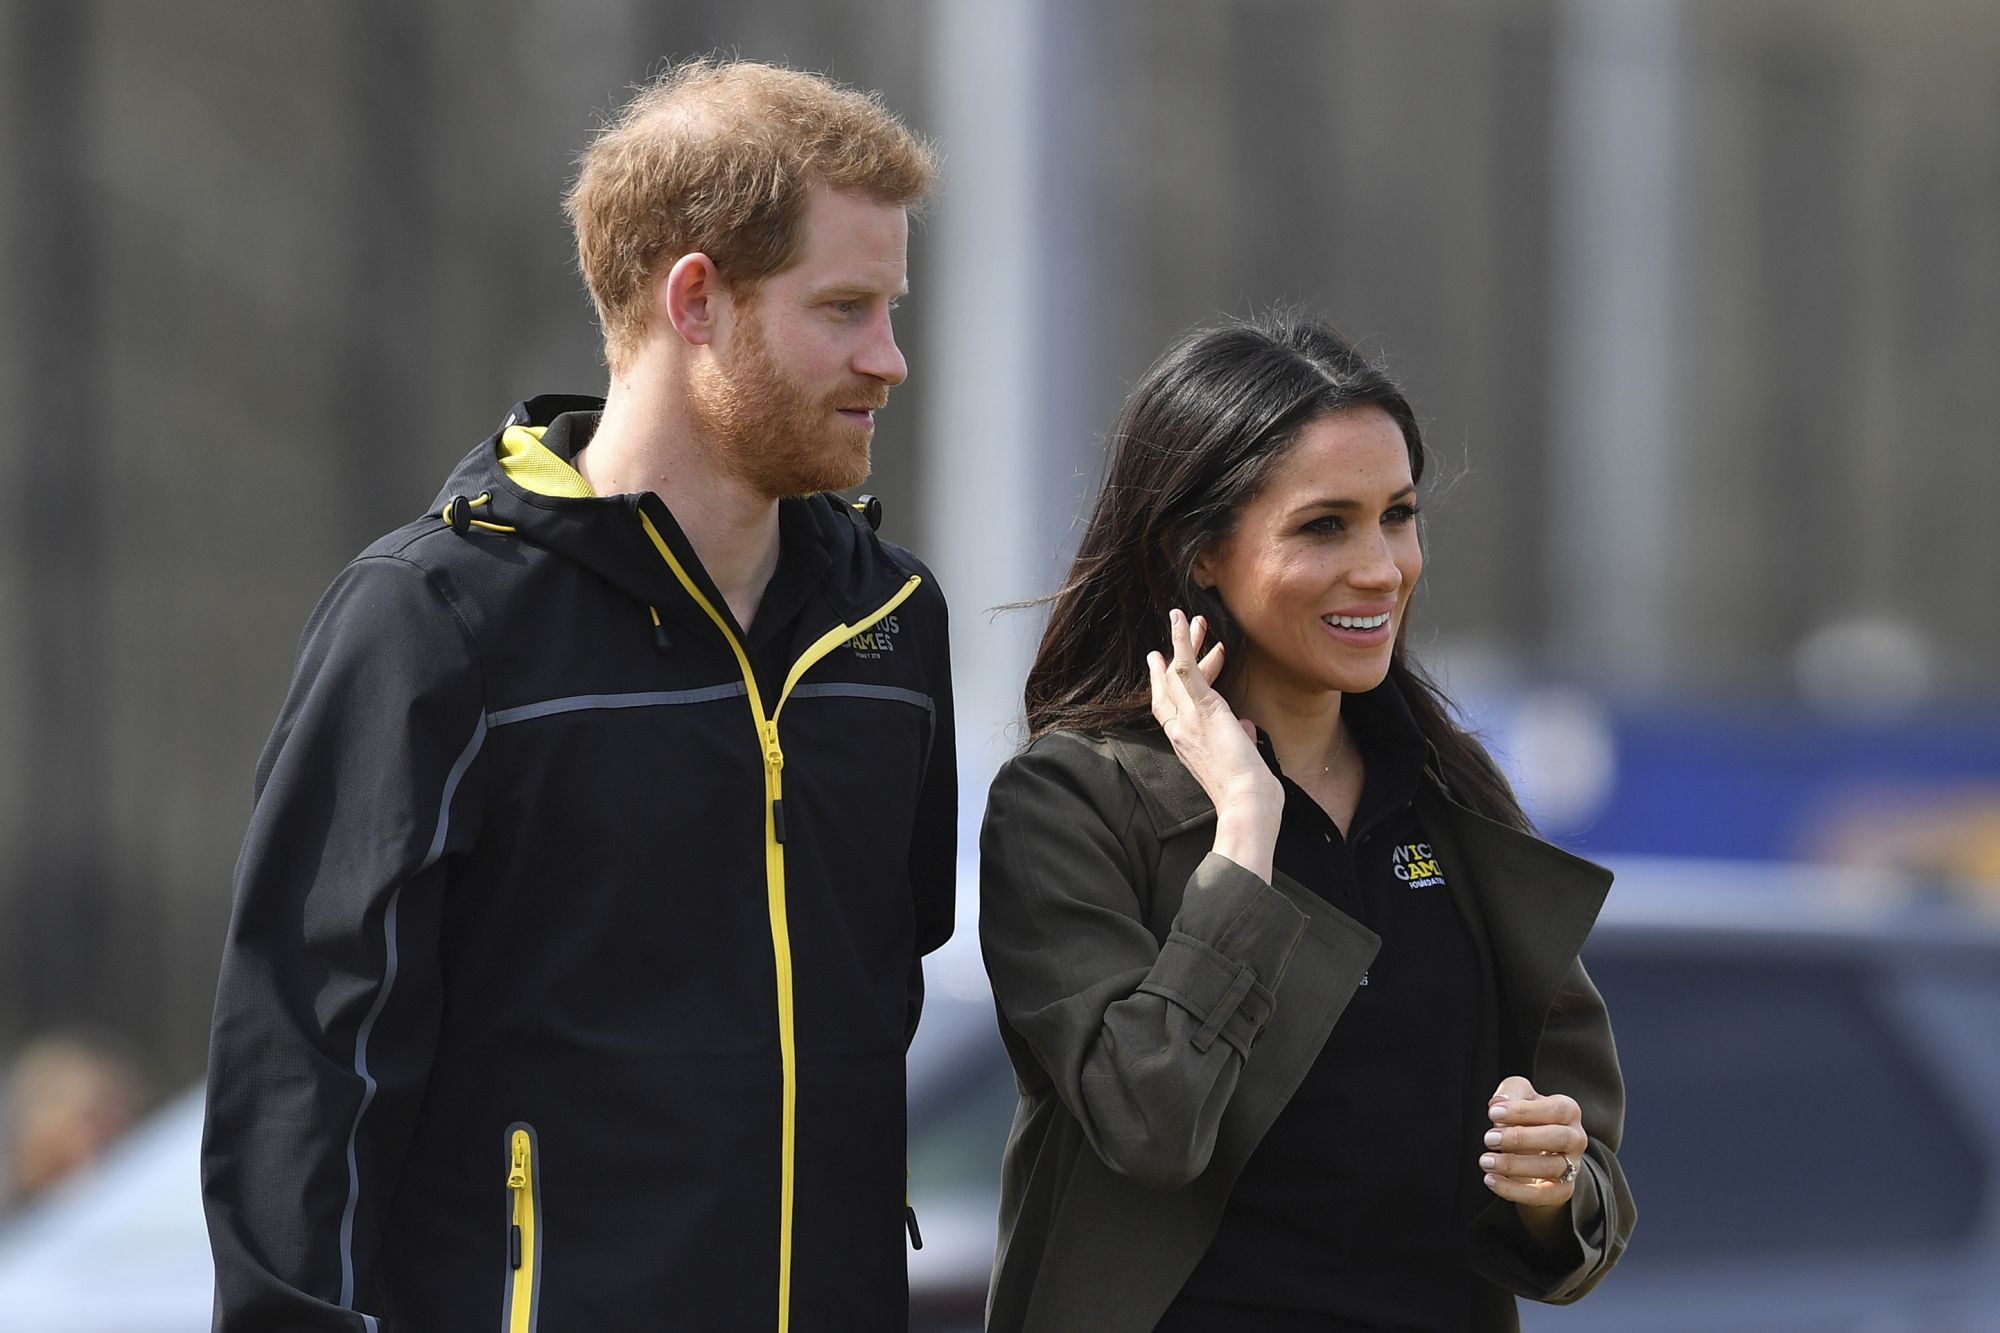 The Latest Updates About Prince Harry And Meghan Markle's Wedding